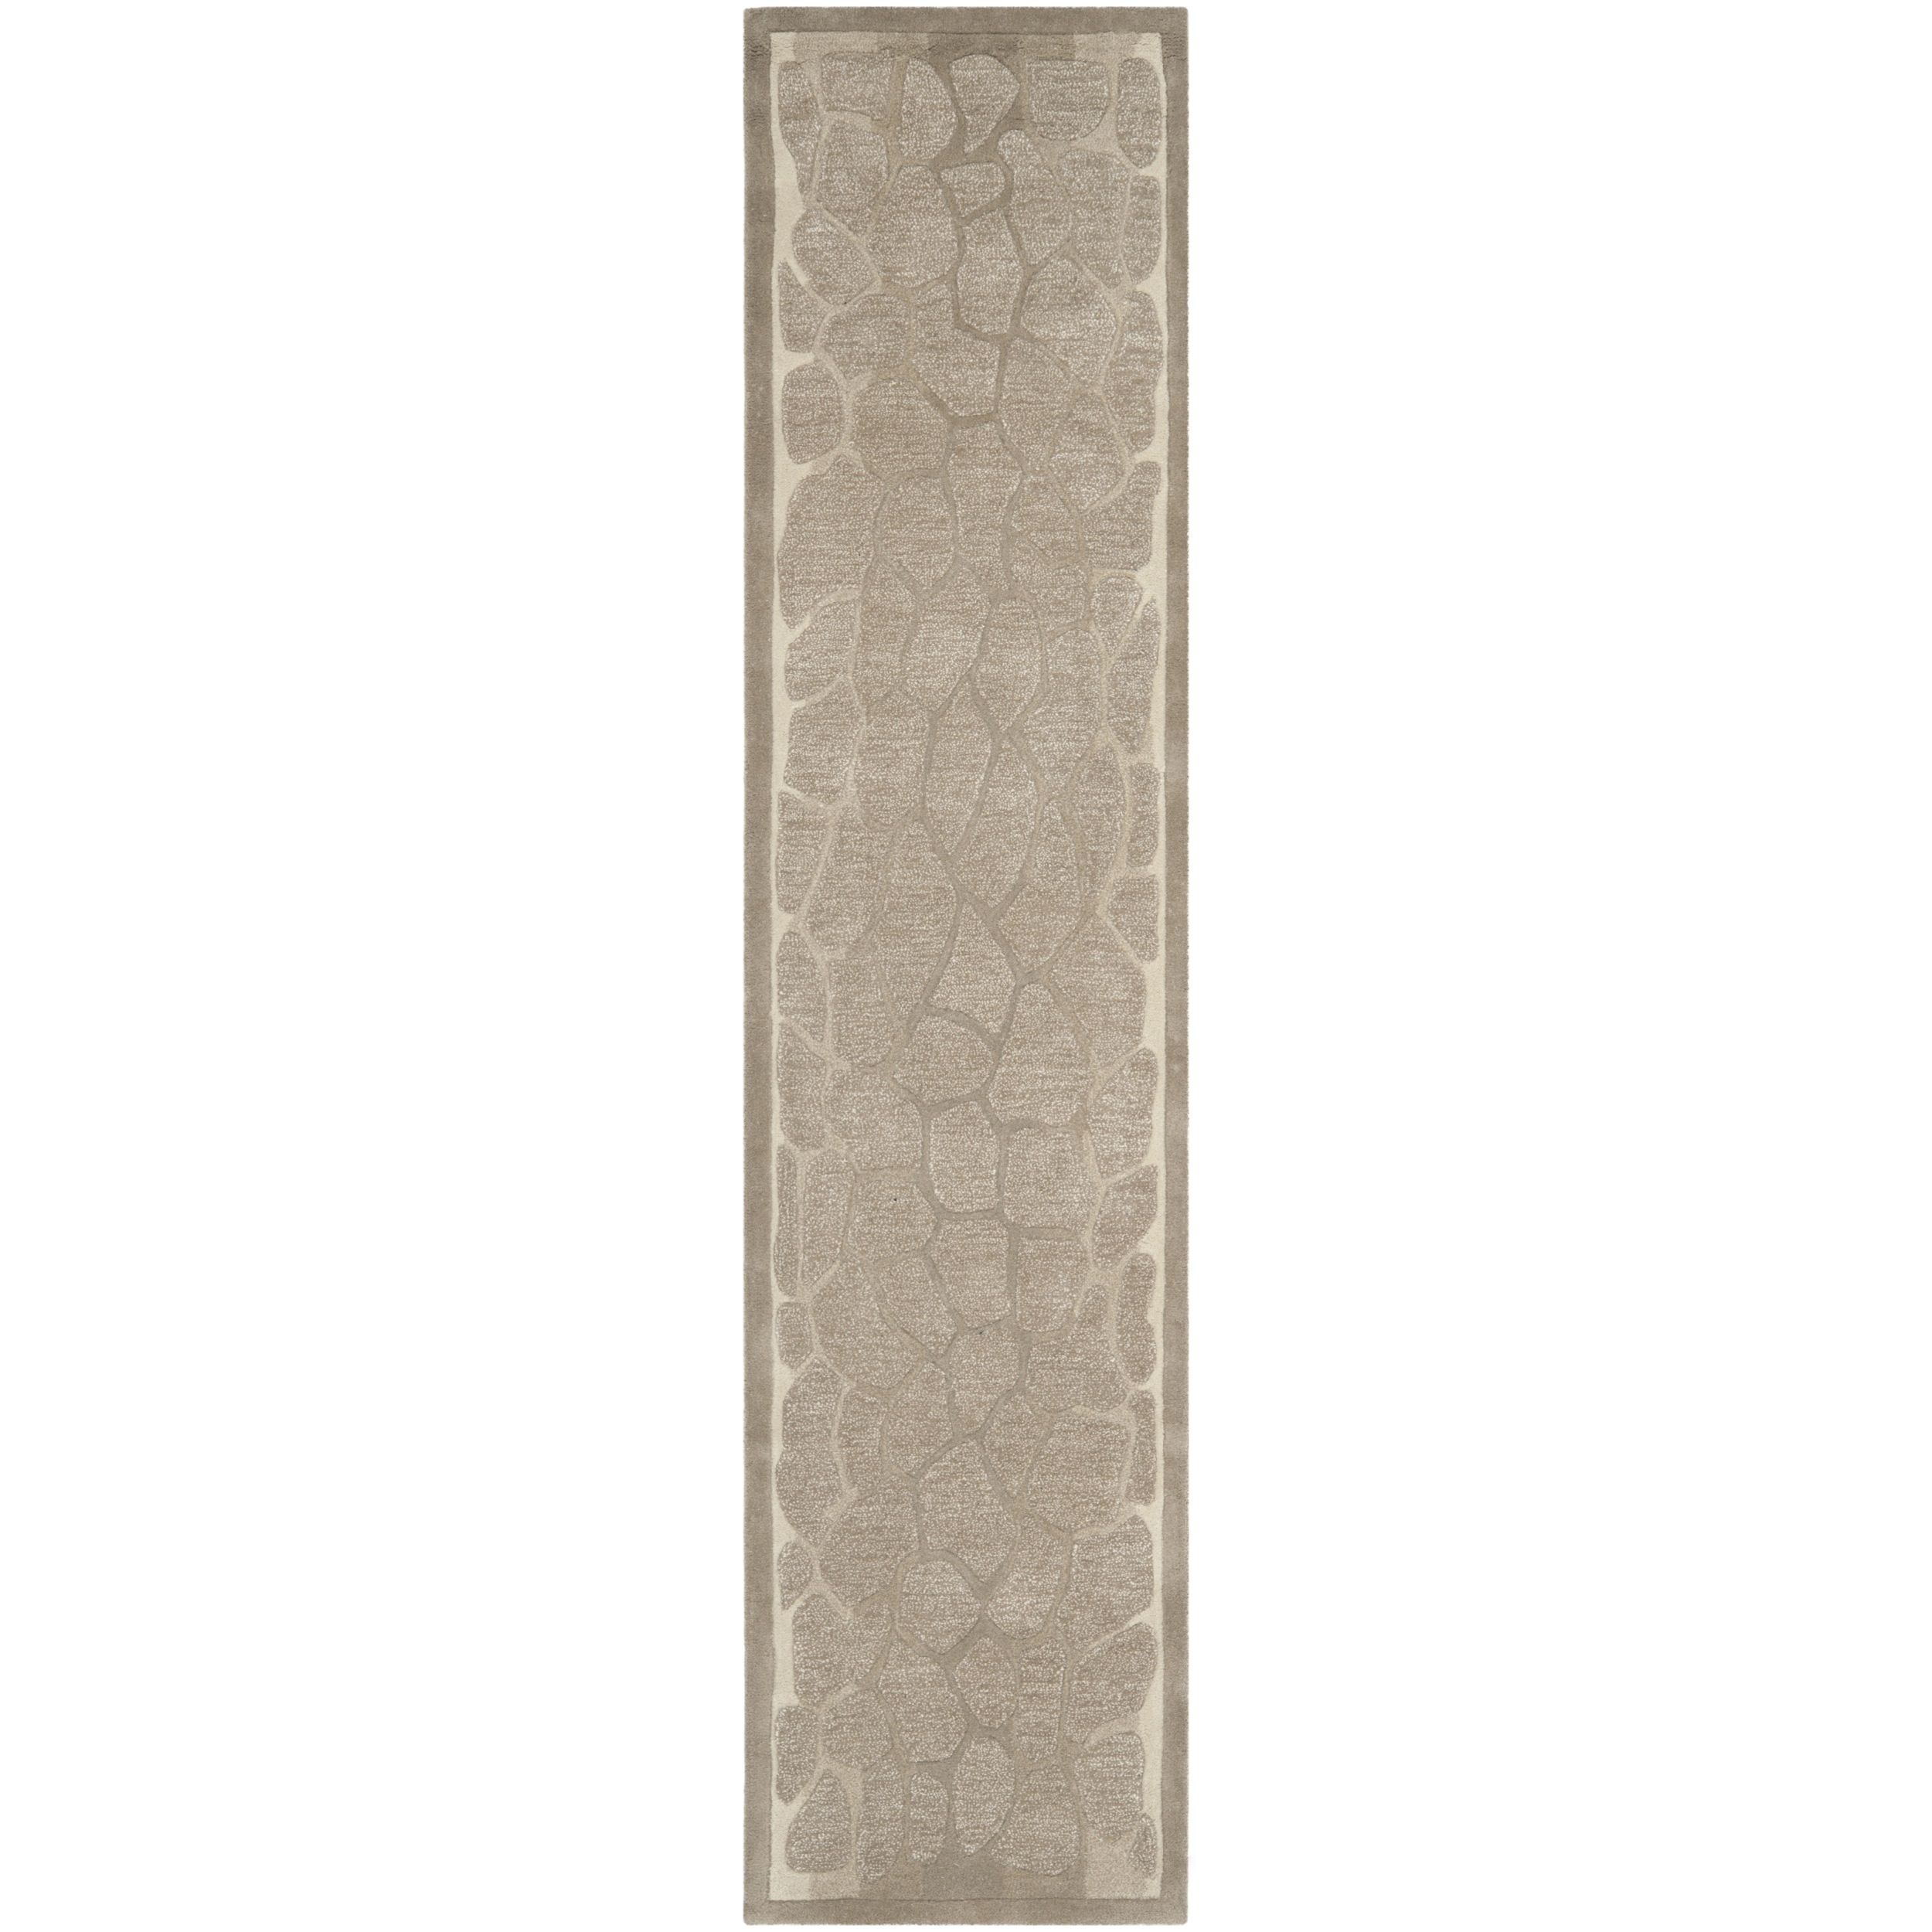 Martha Stewart Arusha Wheat Beige Wool/ Viscose Rug (2' 3 x 10') (MSR3615B-210), Size 2'3 x 10' (Cotton, Abstract)